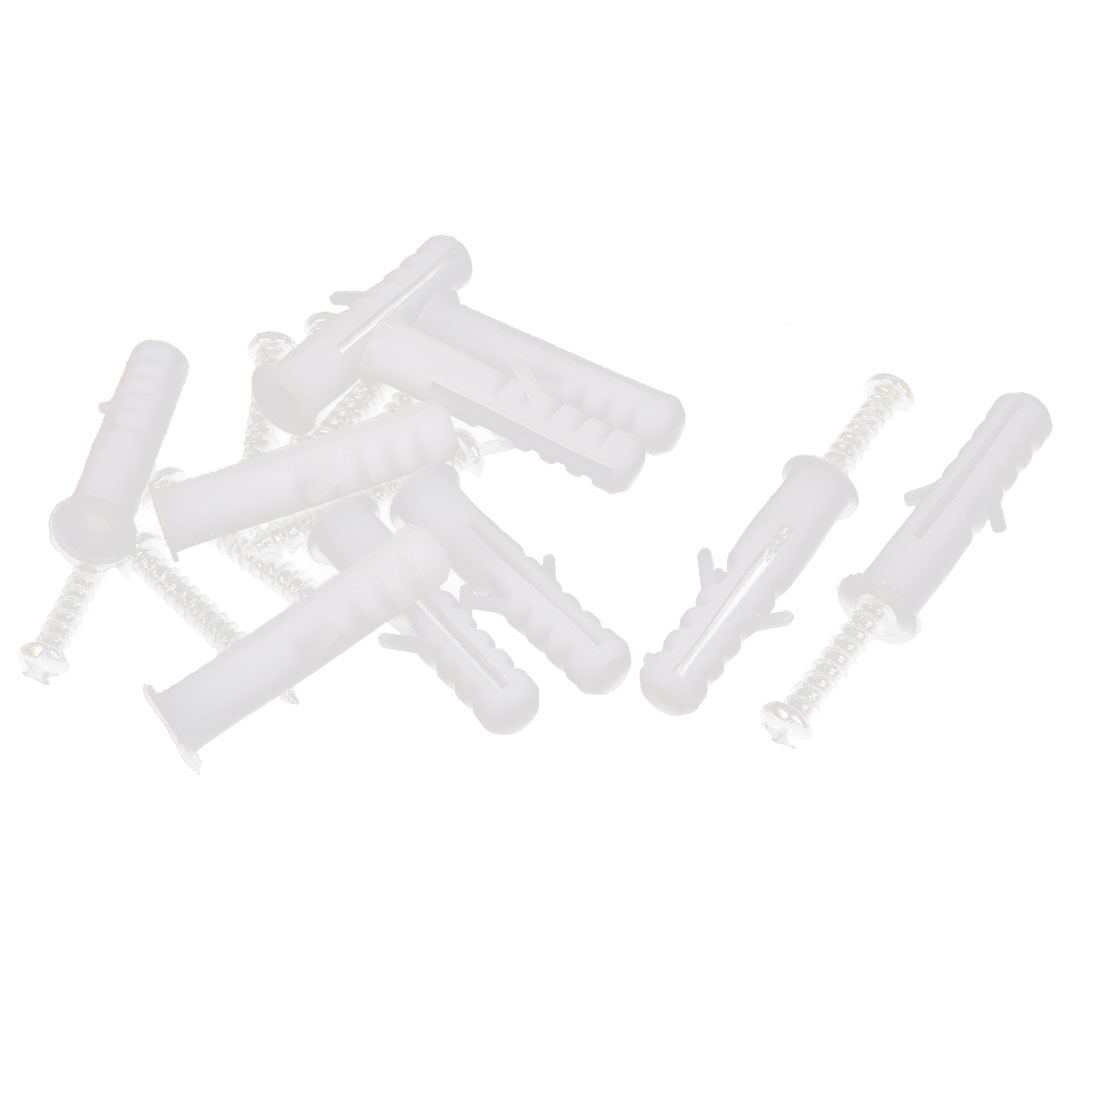 10pcs Plastic M12 Expansion Bolt Wall Screw Anchor w Self-tapping Screws